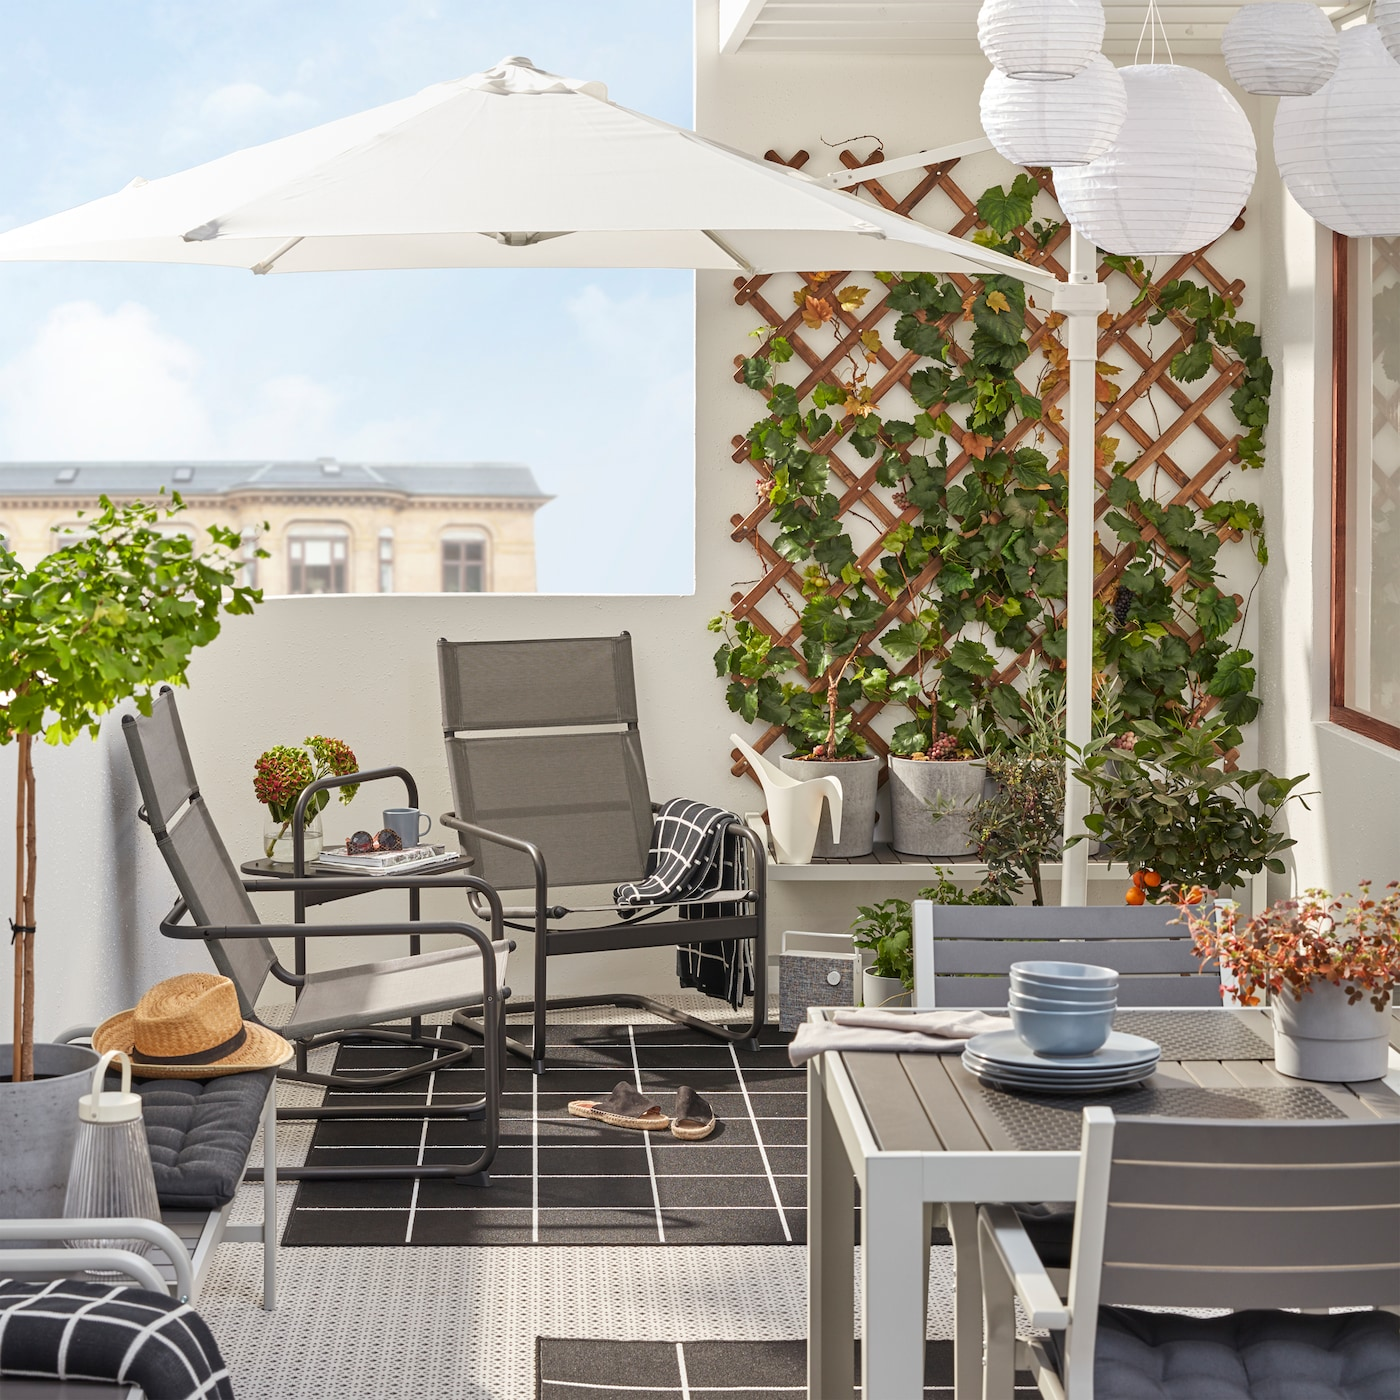 A balcony with HUSARÖ armchairs and side table, a white parasol, a dining table and chairs in grey and rugs in black/white.